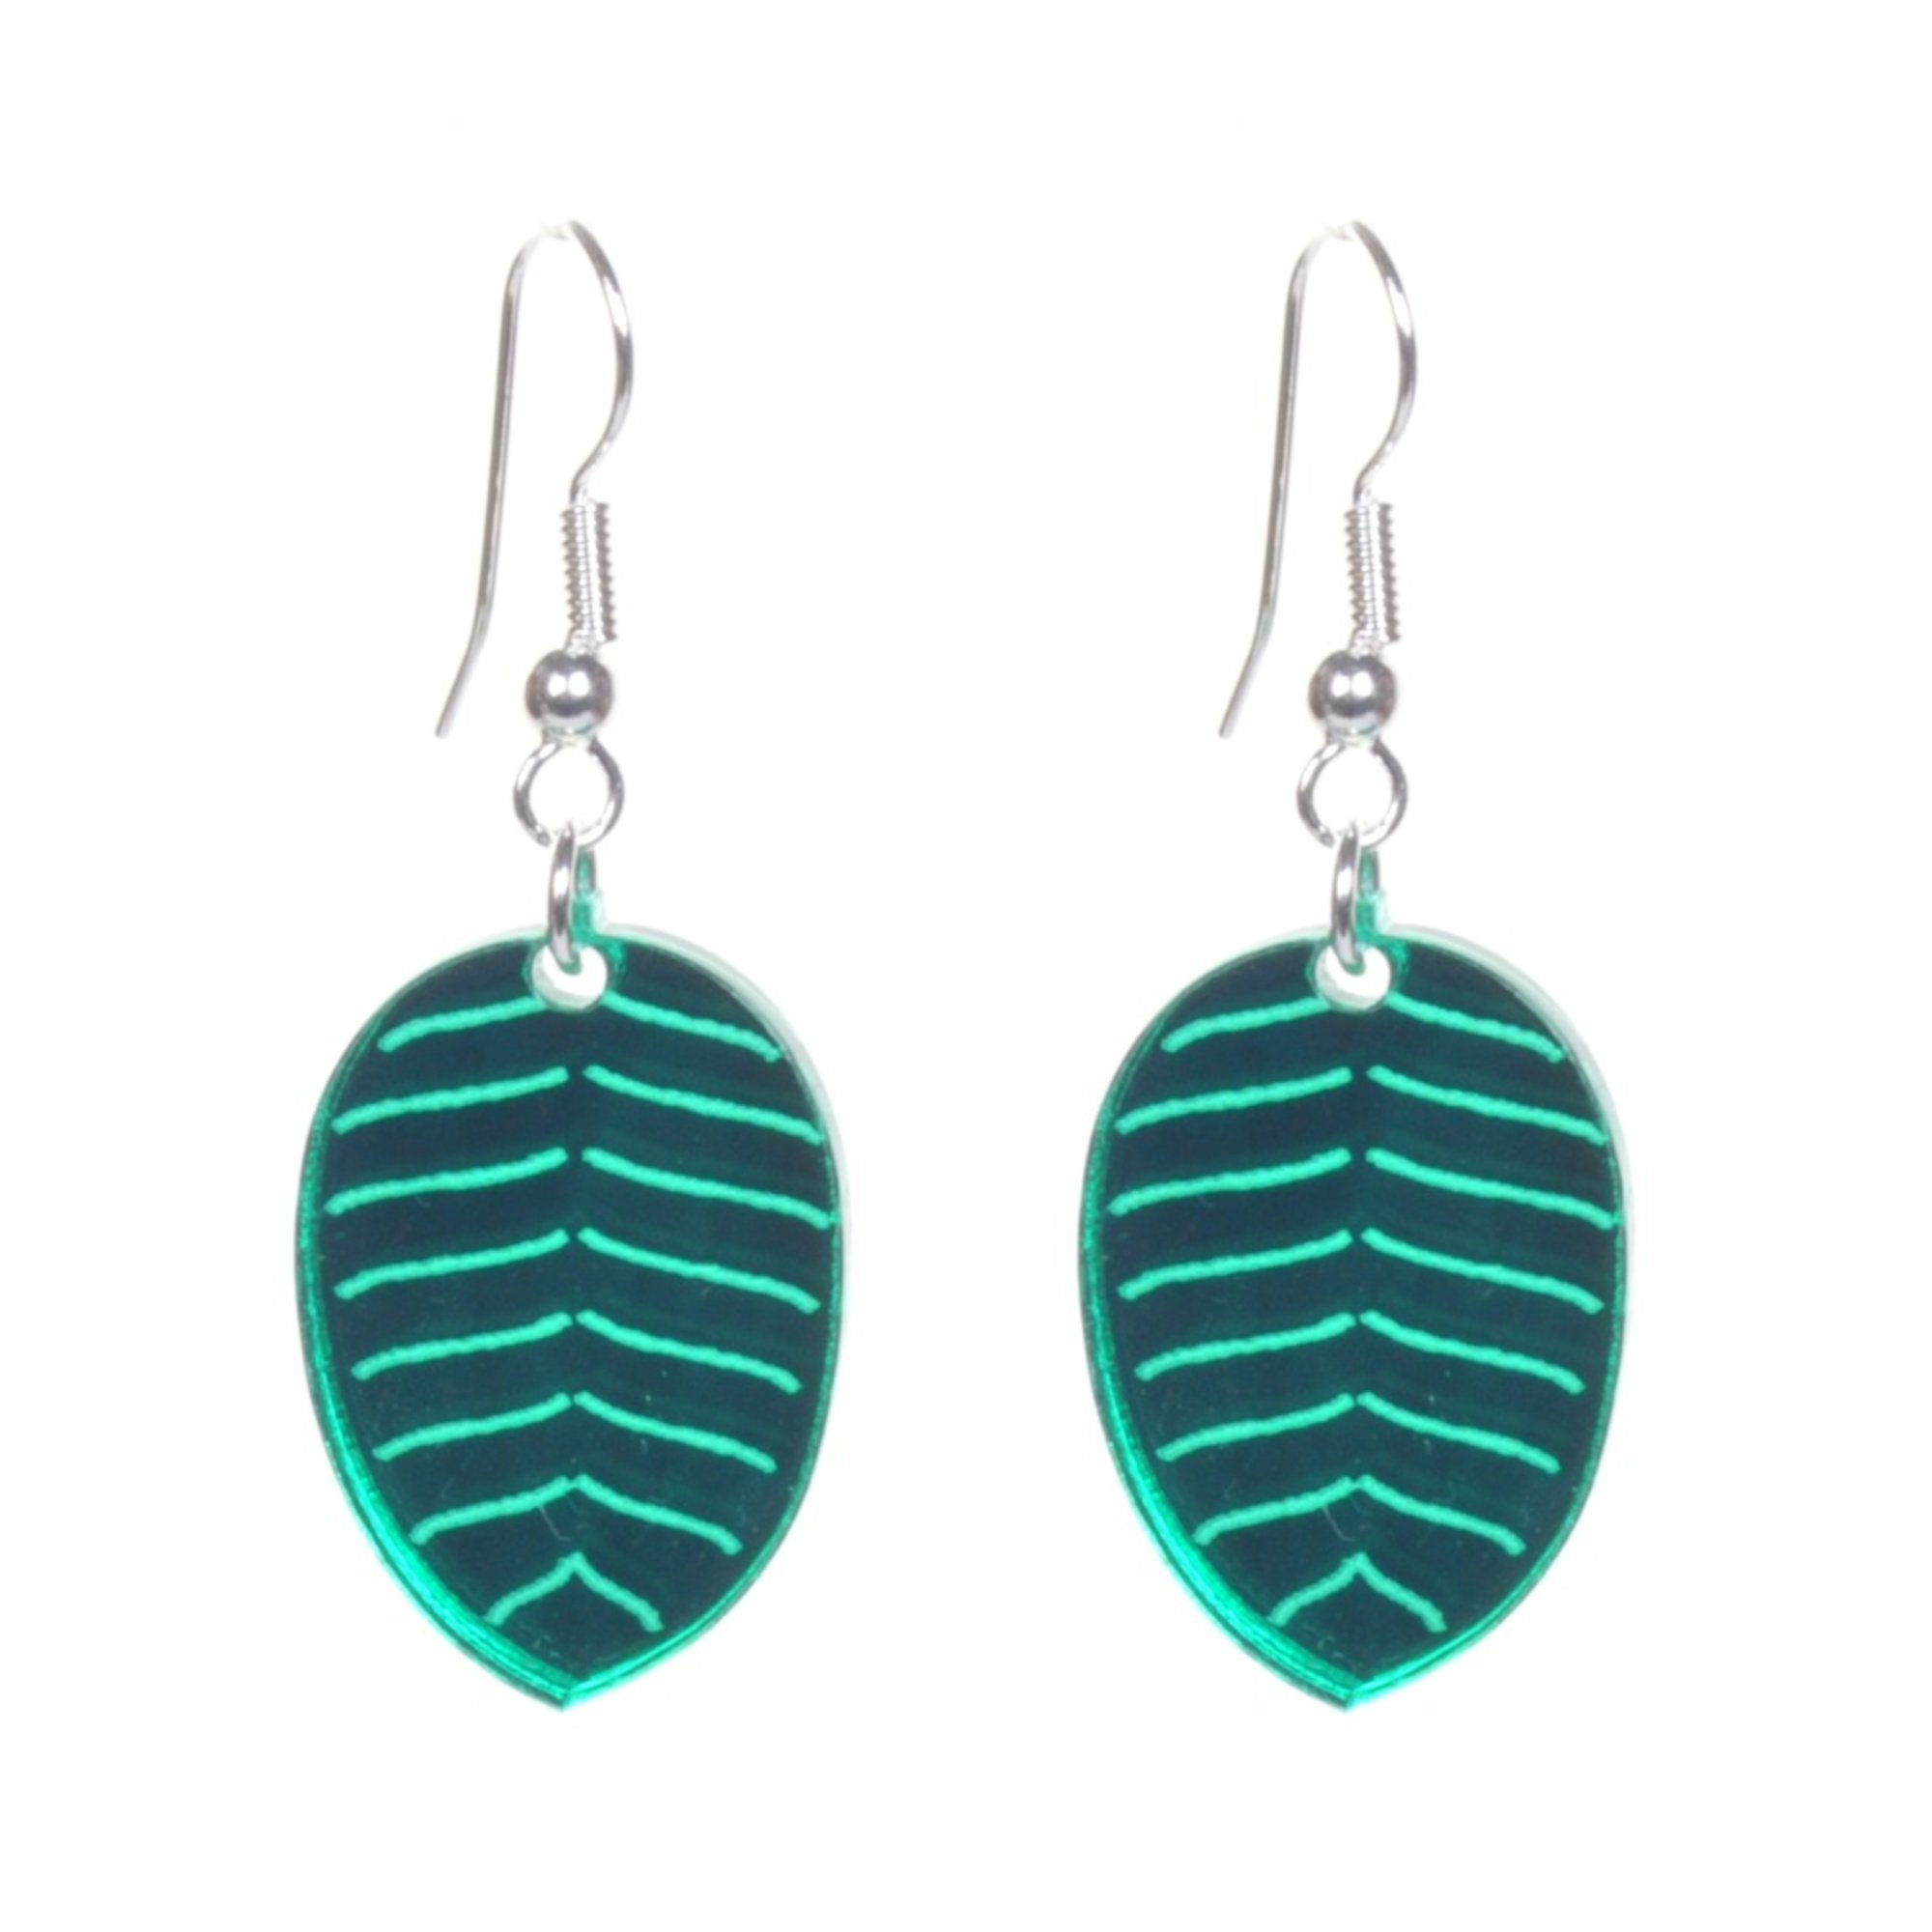 Acrylic Leaf Earrings by Love Boutique - Minimum Mouse